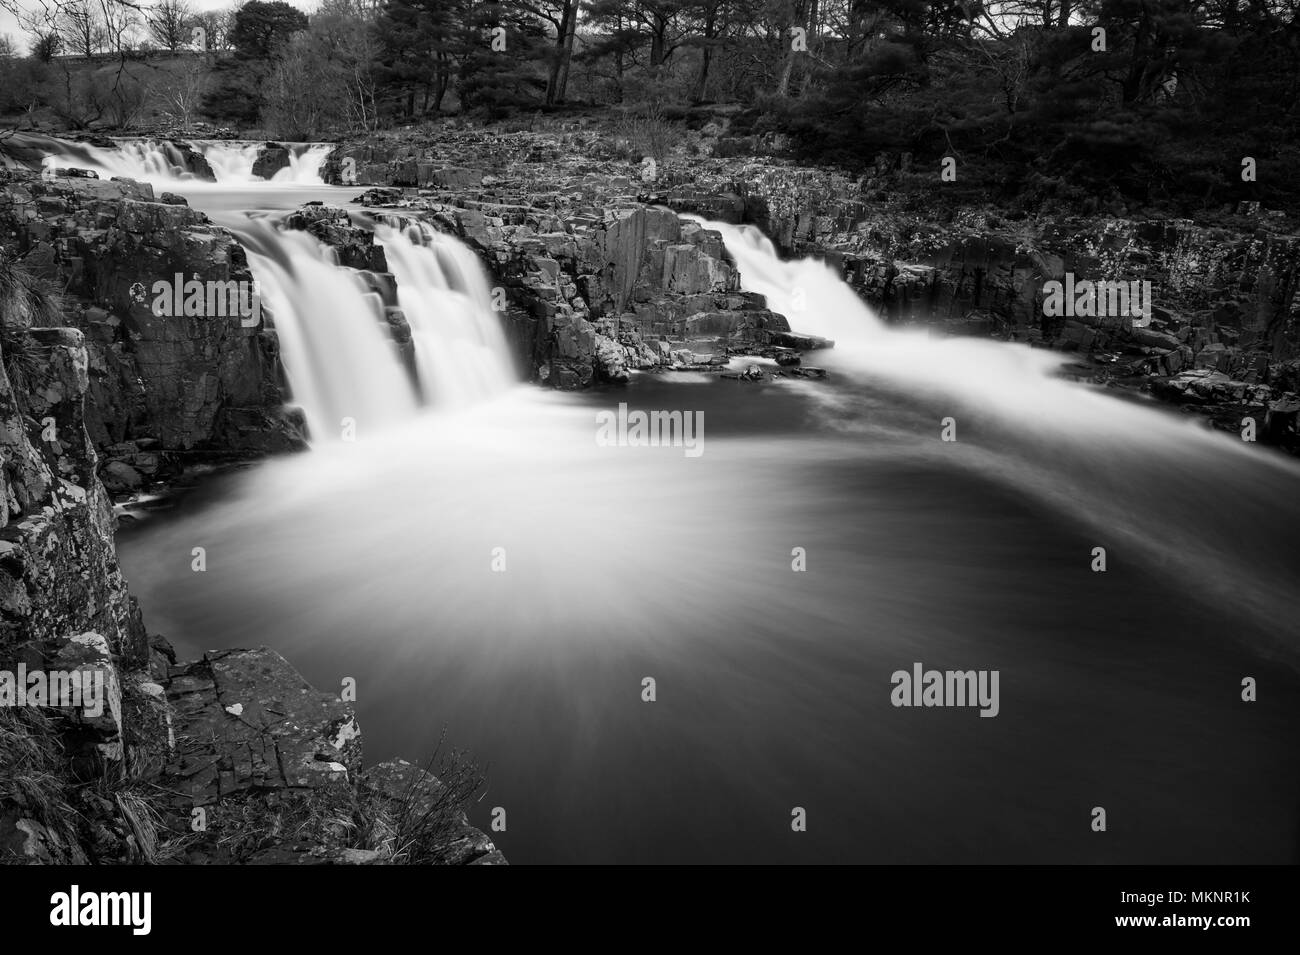 A long exposure black and white image of Low Force Waterfalls in Teesdale, North Pennines AONB - Stock Image